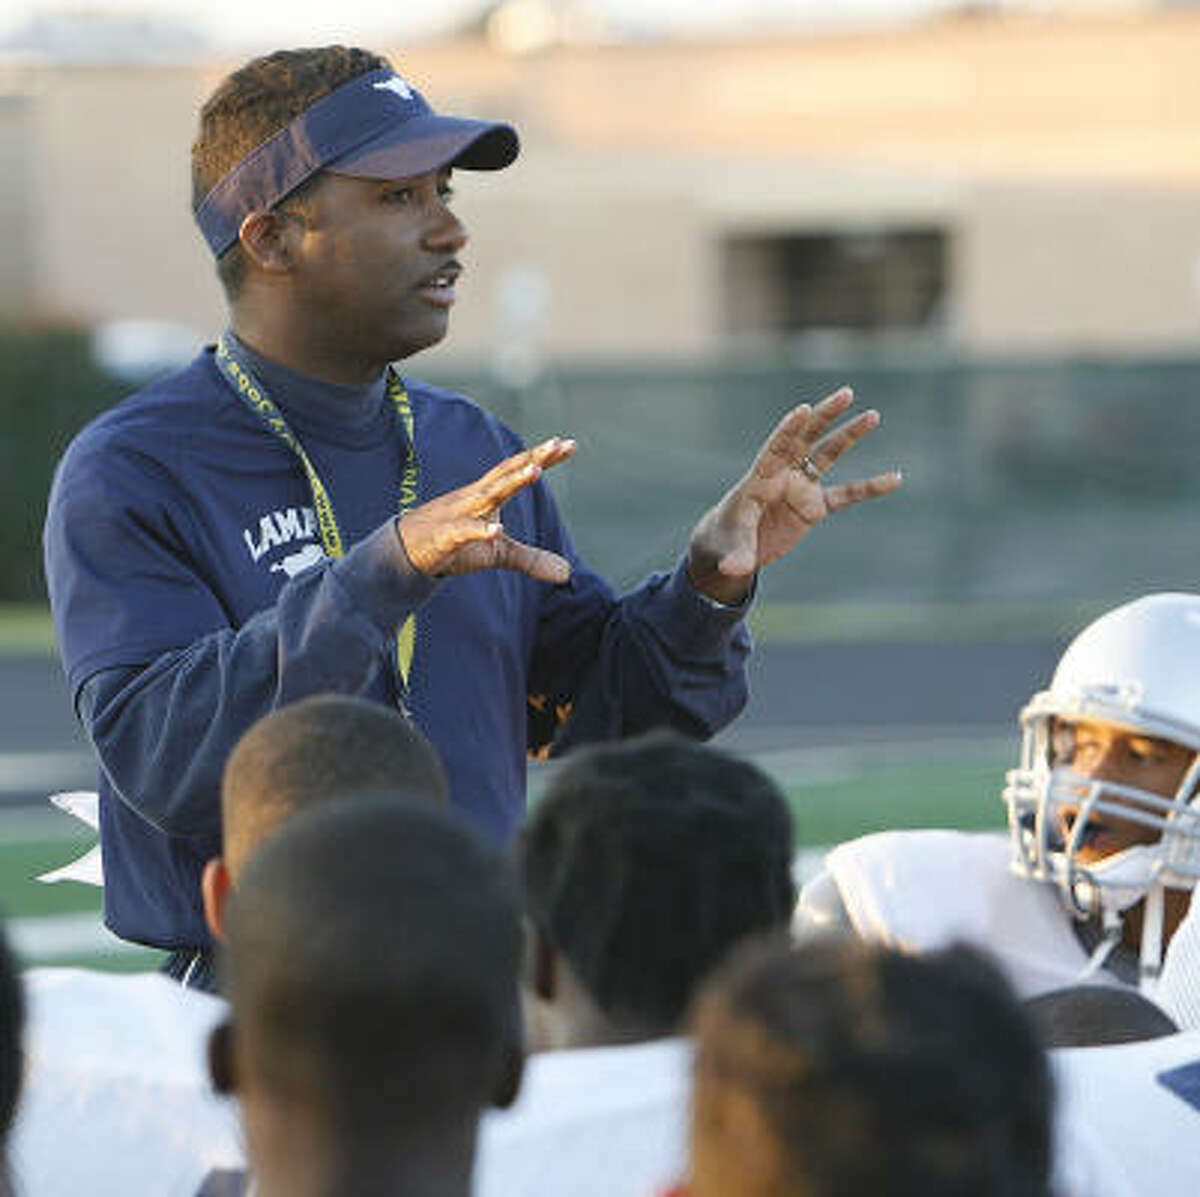 """Lamar Consolidated coach Lydell Wilson says it's """"great to see someone doing it at the highest level"""" — the Super Bowl."""